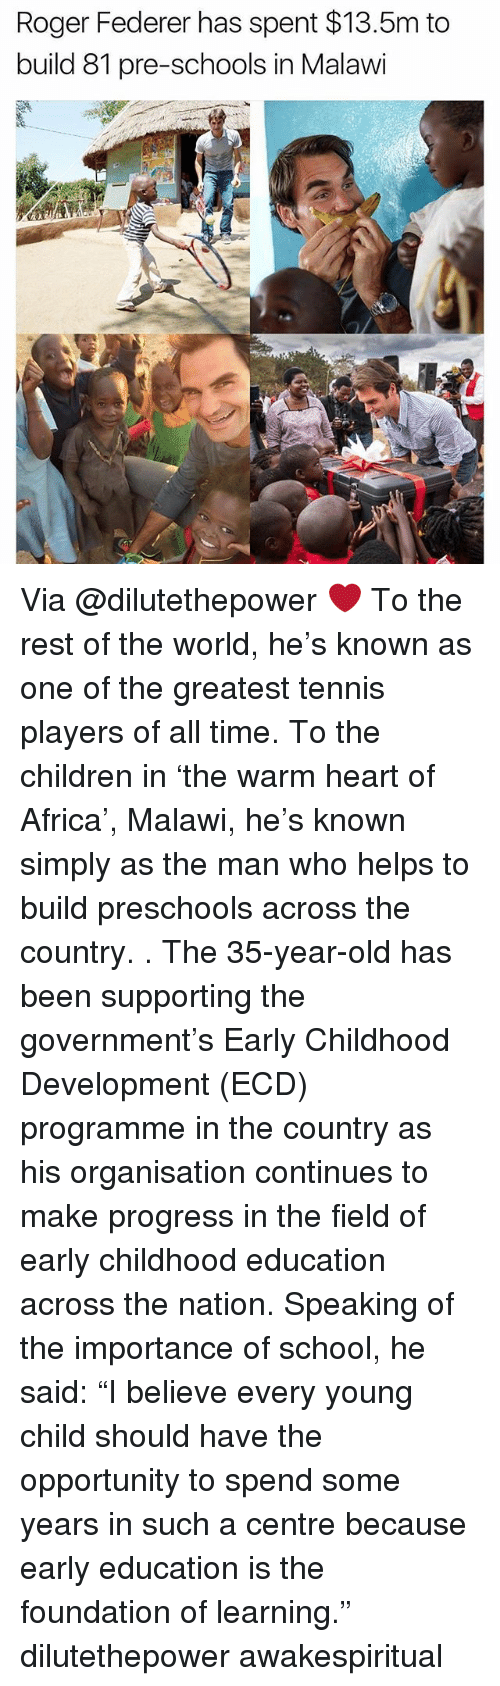 "Rogered: Roger Federer has spent $13.5m to  build 81 pre-schools in Malawi Via @dilutethepower ❤ To the rest of the world, he's known as one of the greatest tennis players of all time. To the children in 'the warm heart of Africa', Malawi, he's known simply as the man who helps to build preschools across the country. . The 35-year-old has been supporting the government's Early Childhood Development (ECD) programme in the country as his organisation continues to make progress in the field of early childhood education across the nation. Speaking of the importance of school, he said: ""I believe every young child should have the opportunity to spend some years in such a centre because early education is the foundation of learning."" dilutethepower awakespiritual"